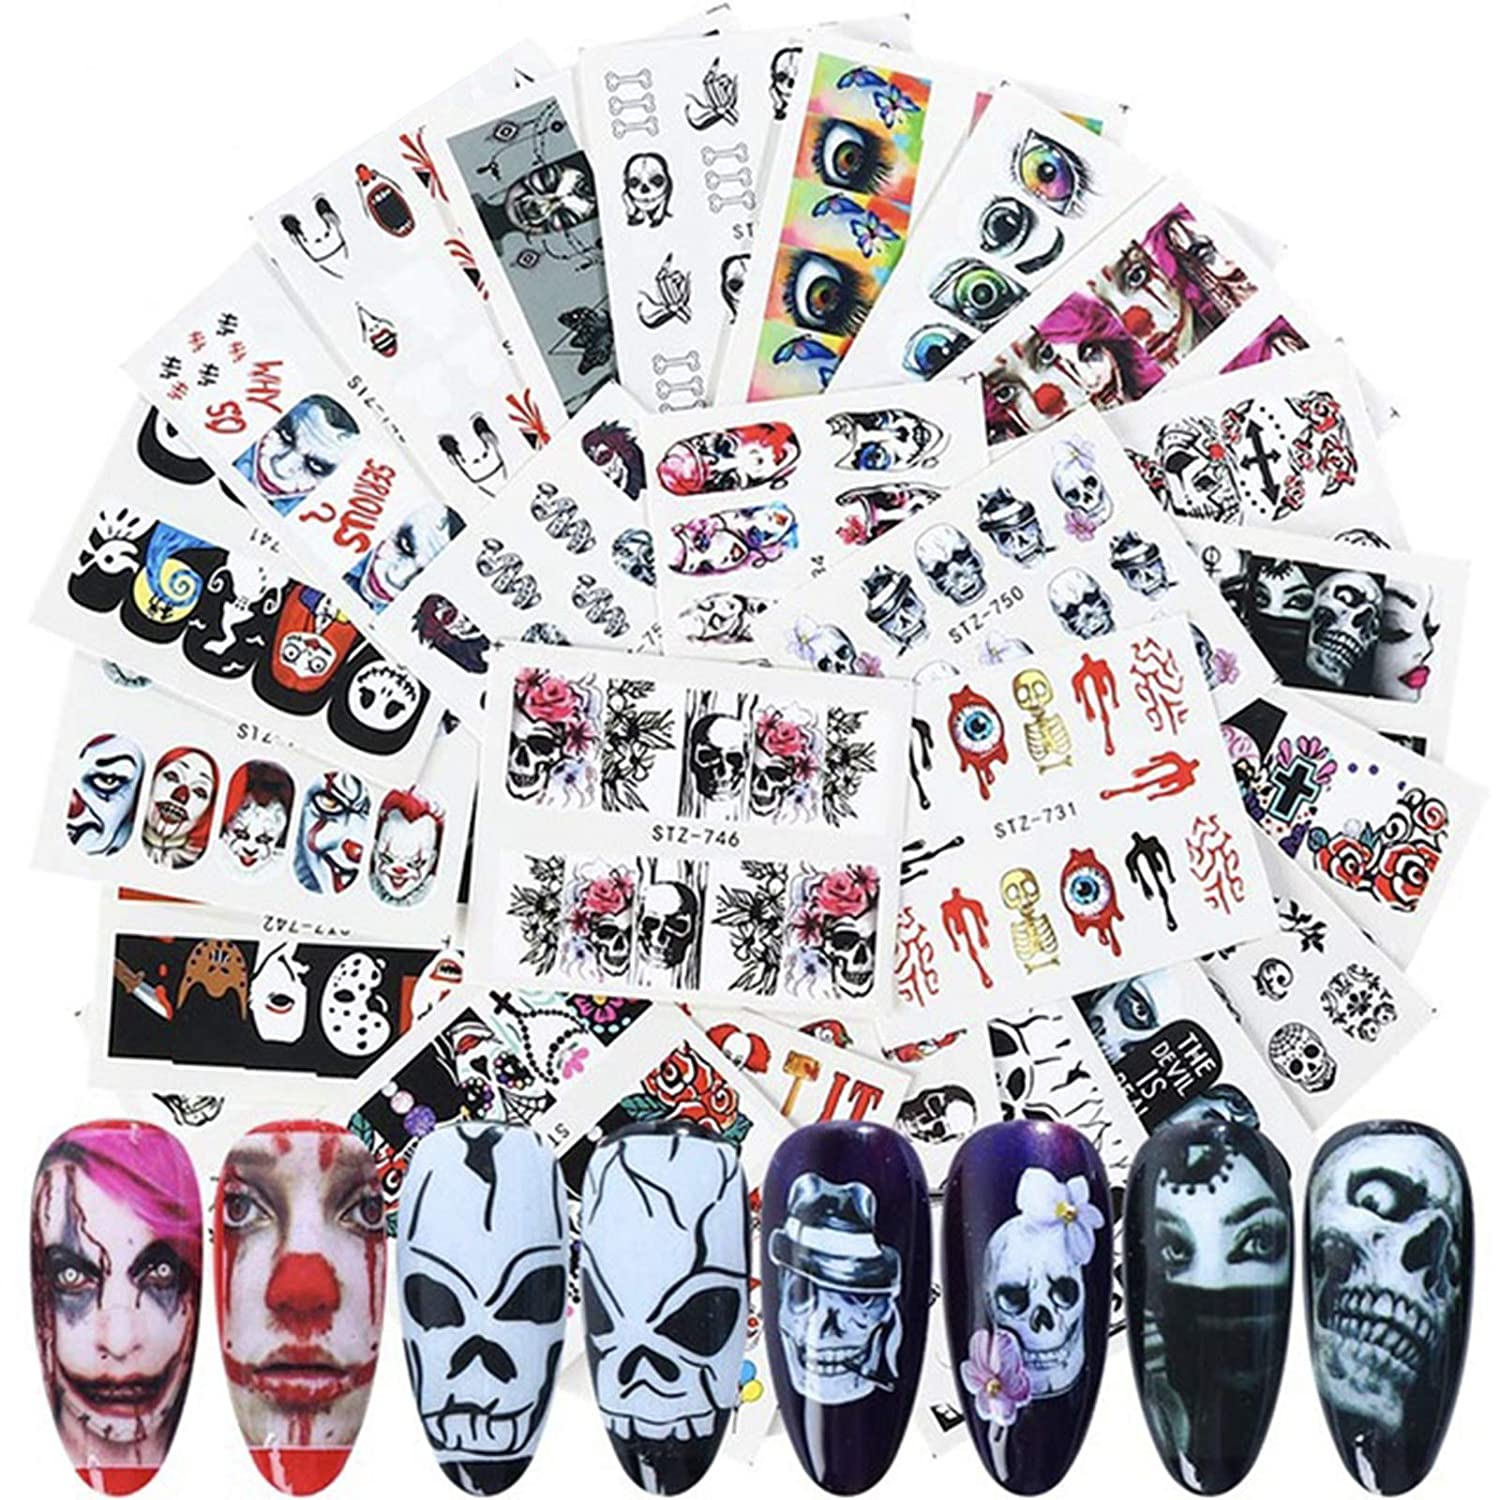 SisterAling(24Pcs) Halloween accessories Nail Art StickersNail Art Stickers etc Colorful Transfer Watermark Nail Stickers for Nails Design Manicure Tips Deco